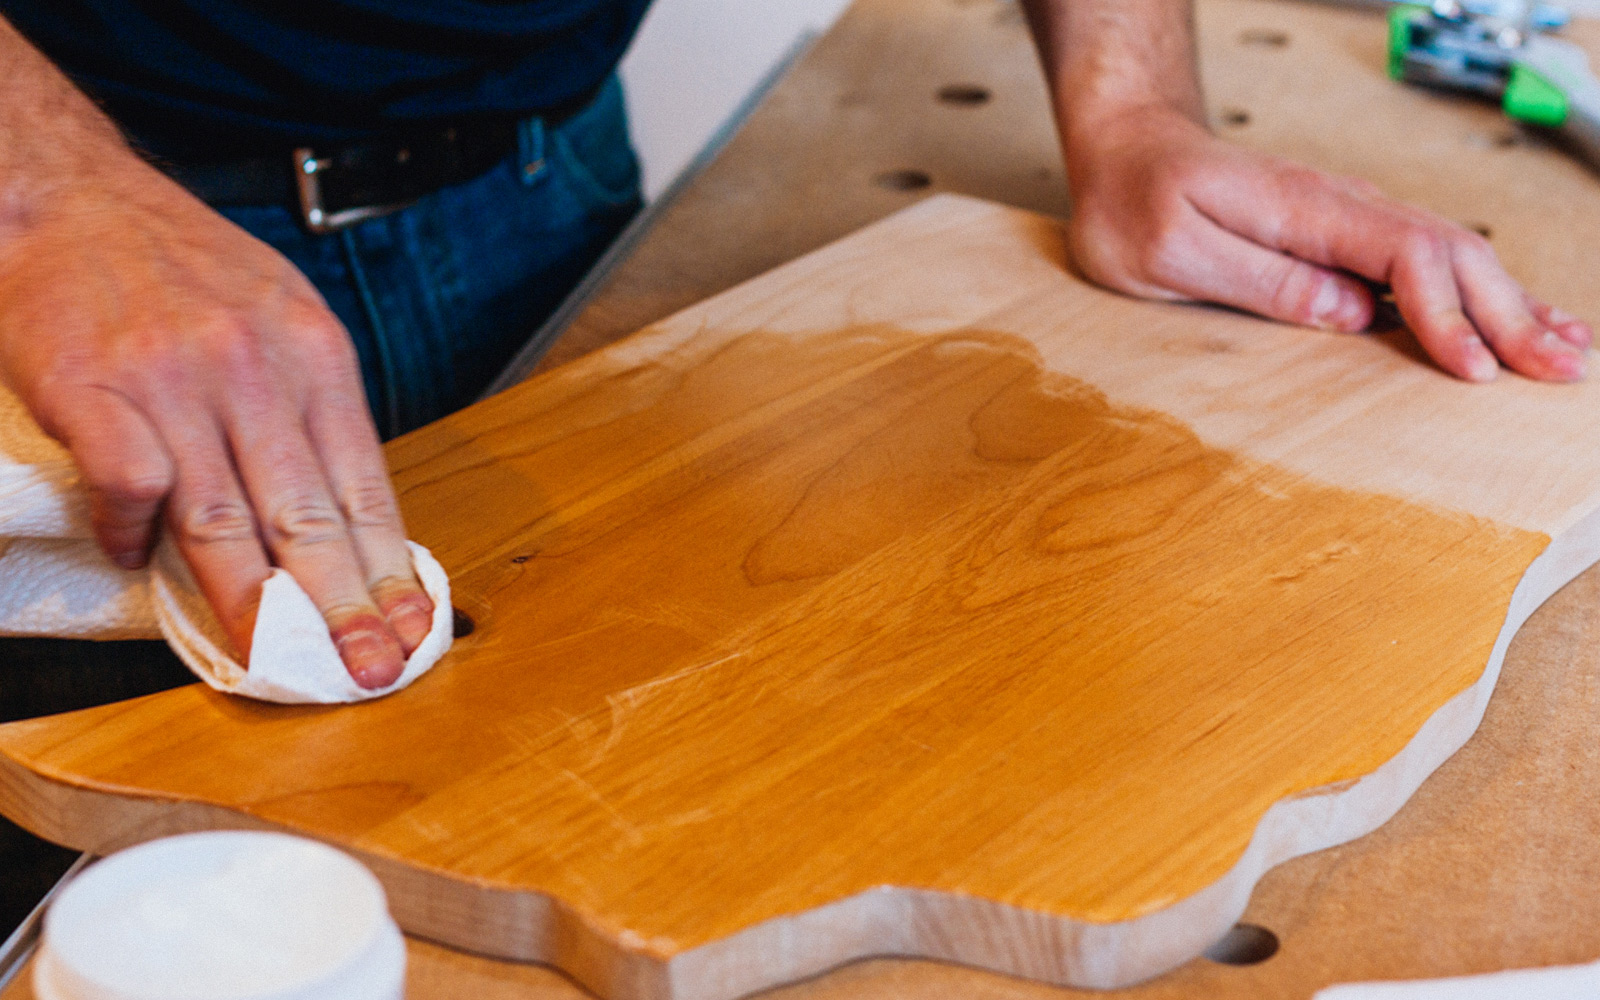 how to clean cutting board after raw meat